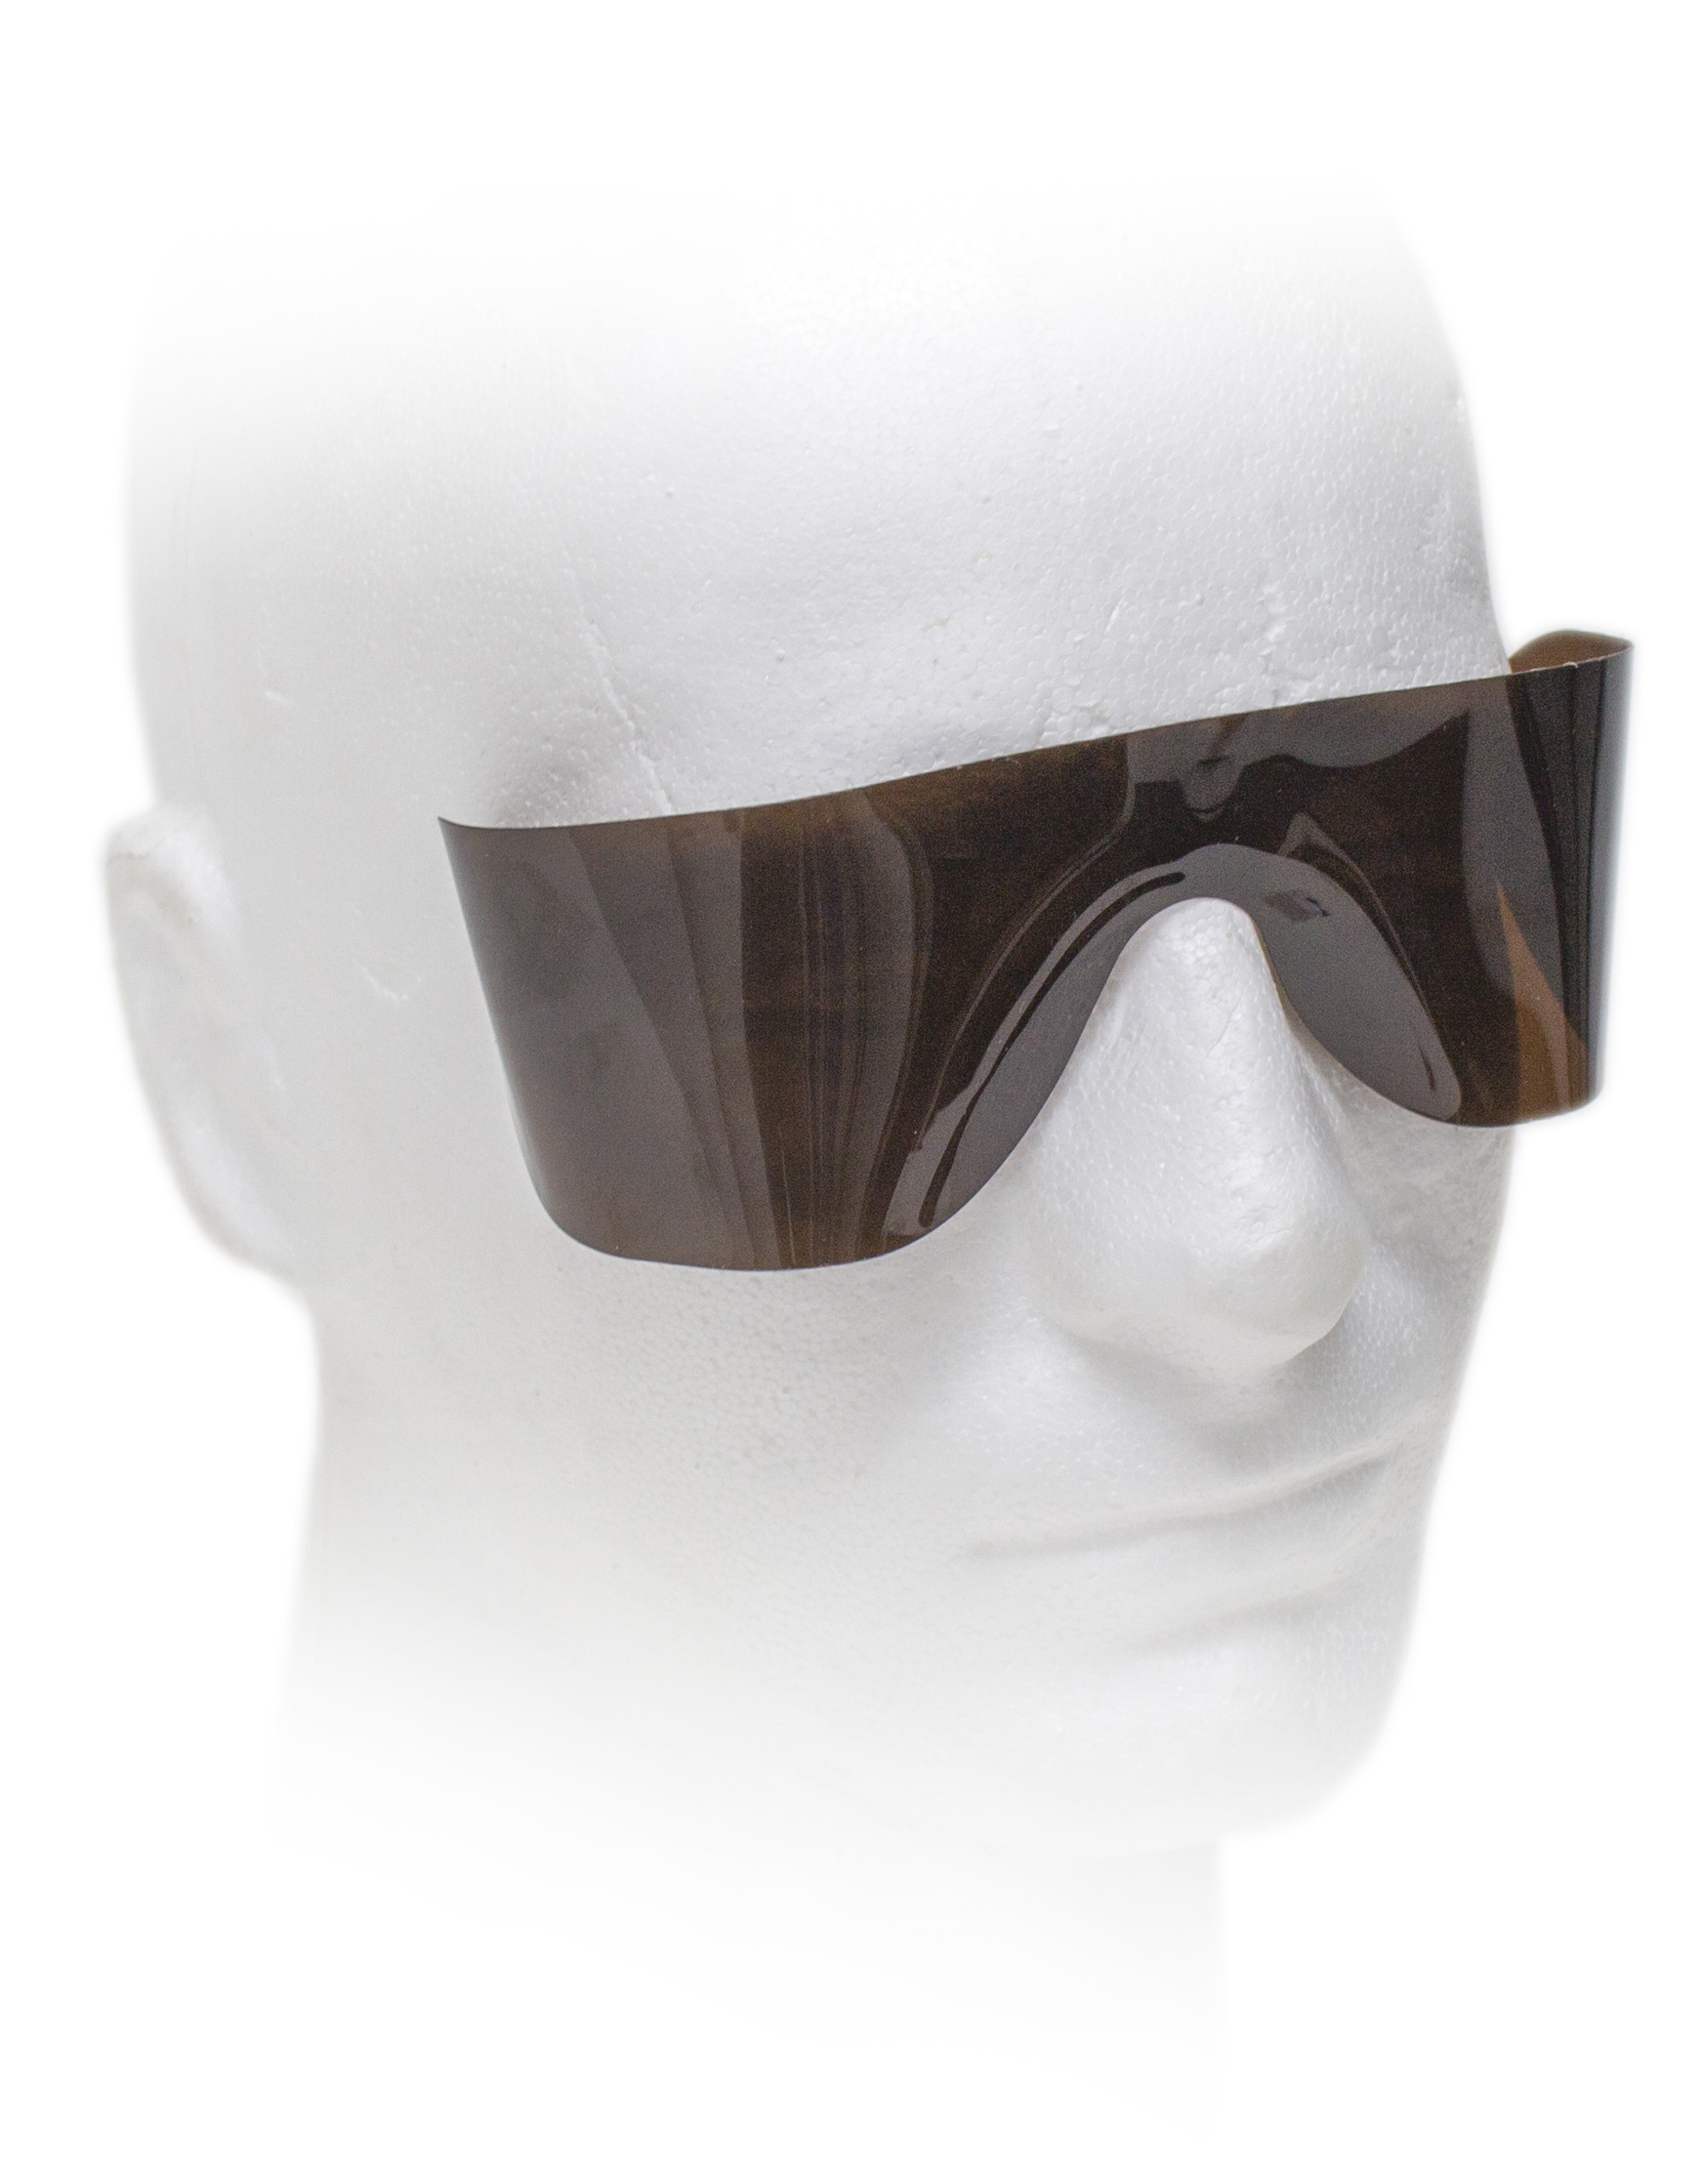 Bernell Roll-up Post-Mydriatic Sunglasses (Bag of 100)